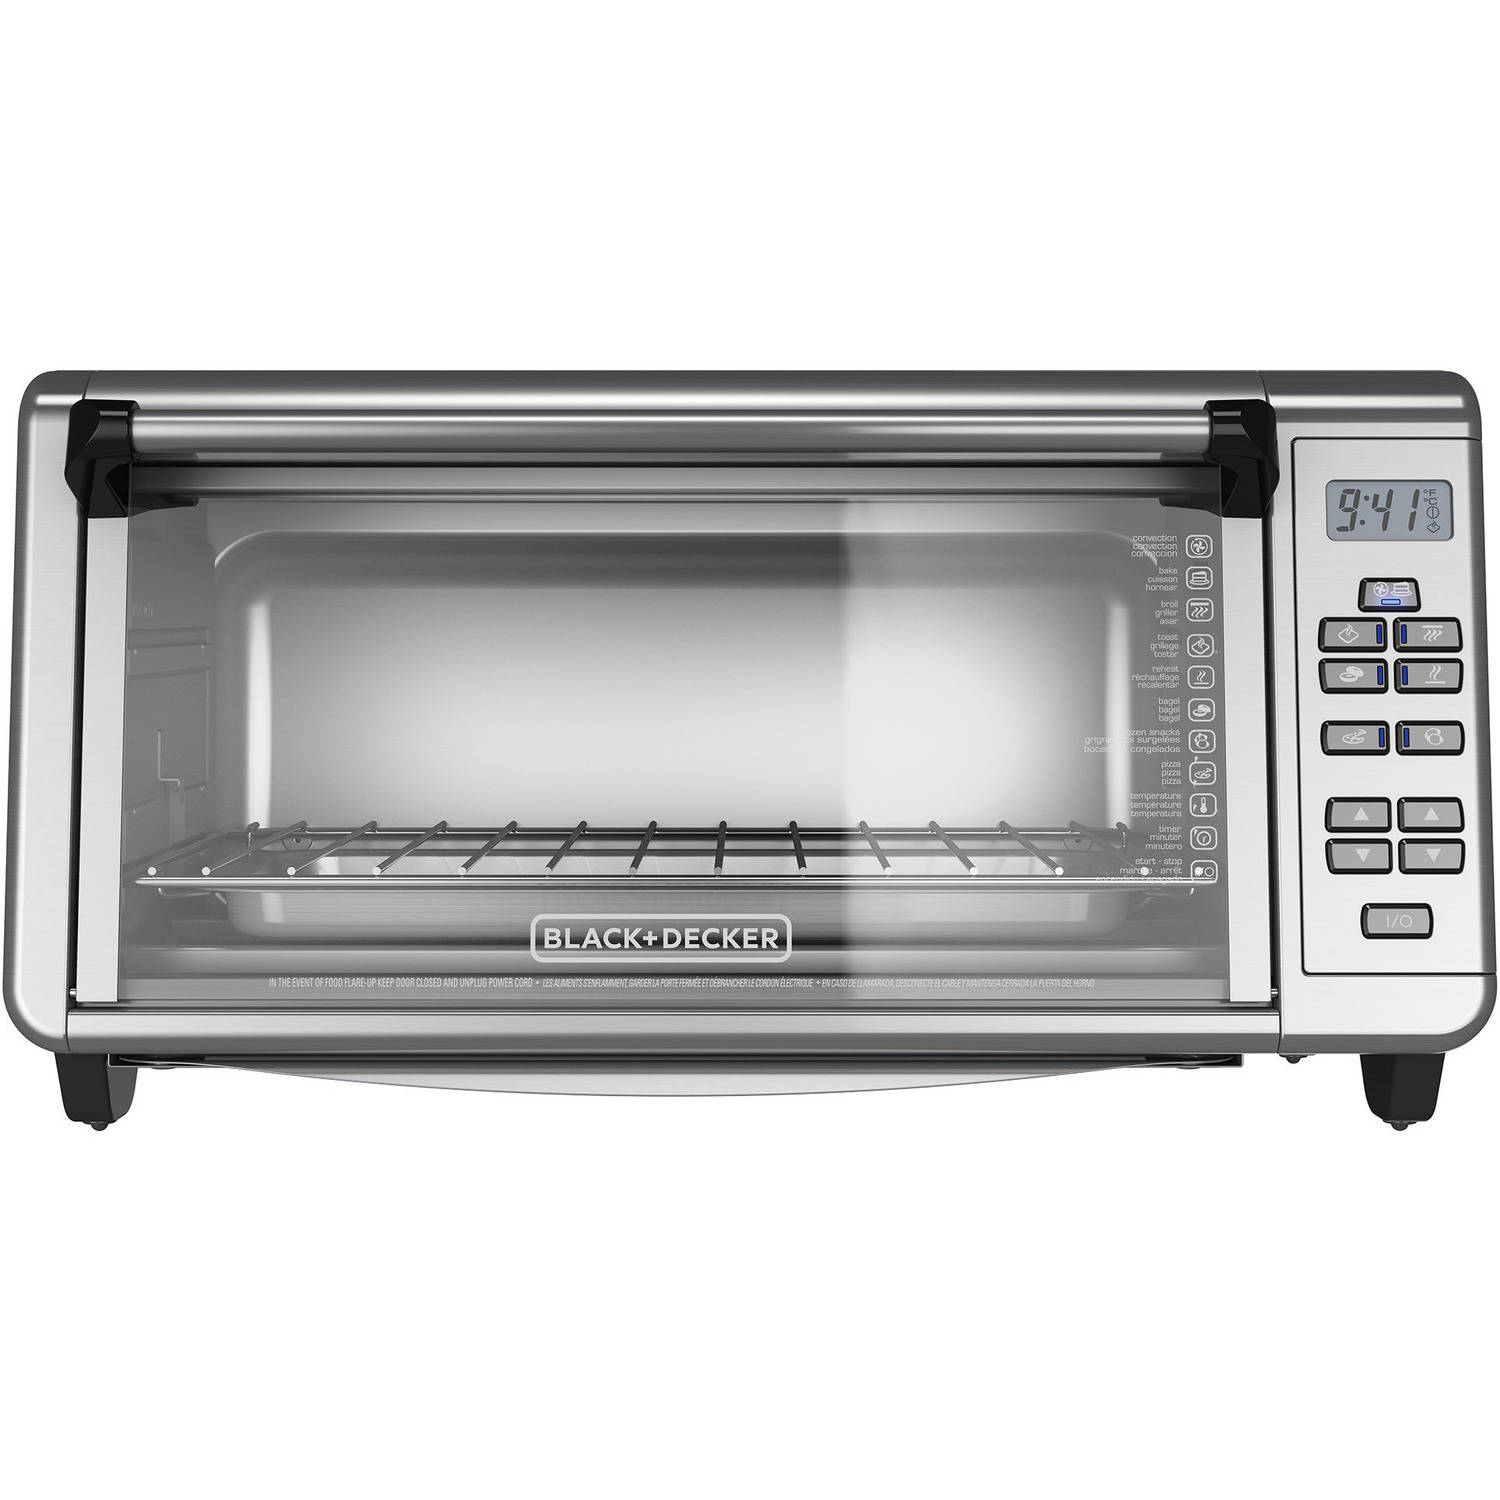 BLACK+DECKER Extra Wide Digital Toaster Convection Oven, TO3290XG